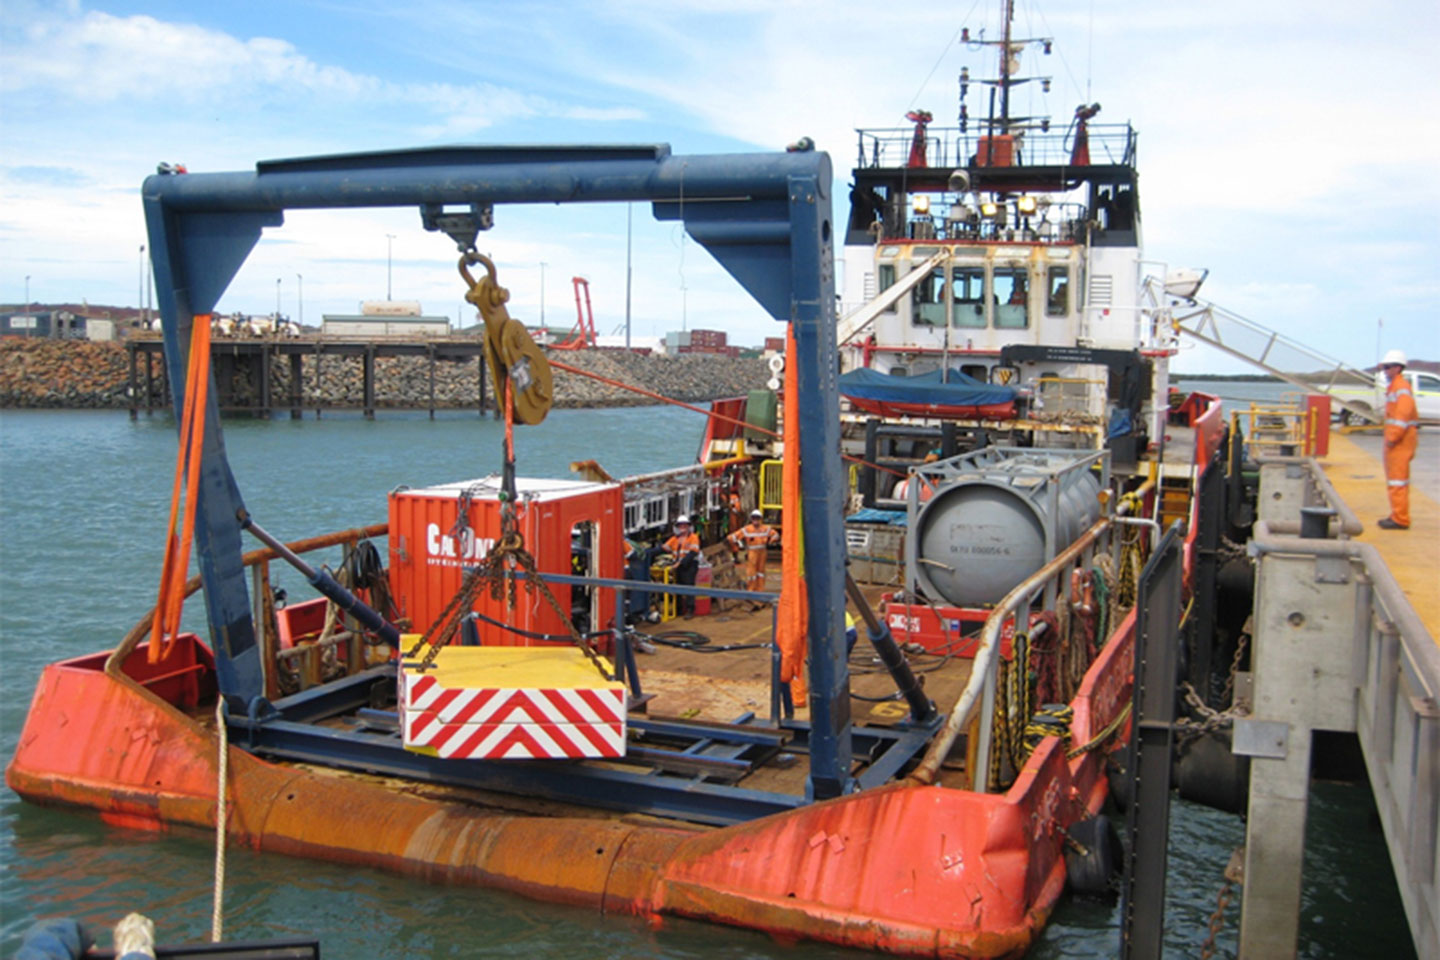 Saturation Diving Companies : Shelf subsea merges with fugro tsm business news